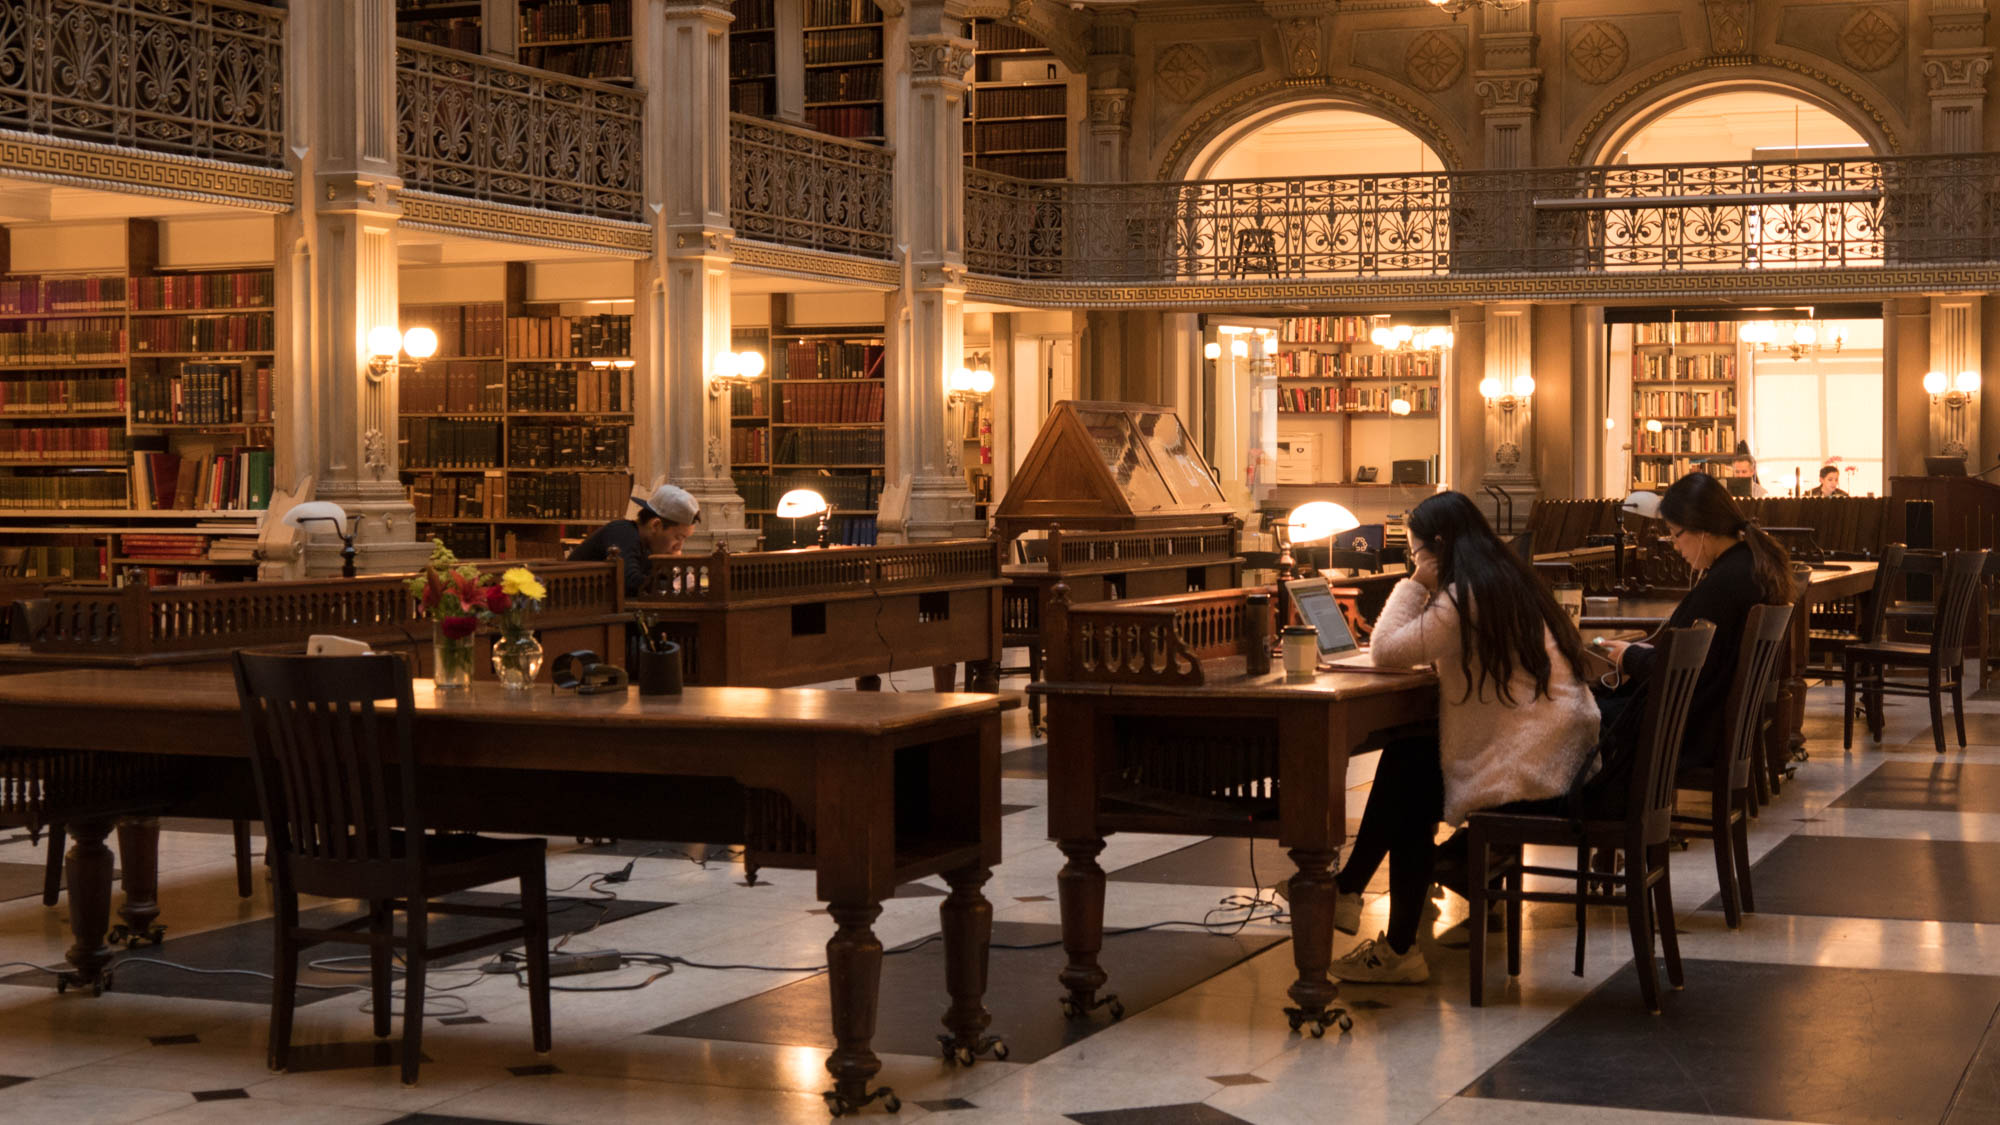 The George Peabody Library is free for the public to use every day, in accordance with Mr. Peabody's gifting terms.